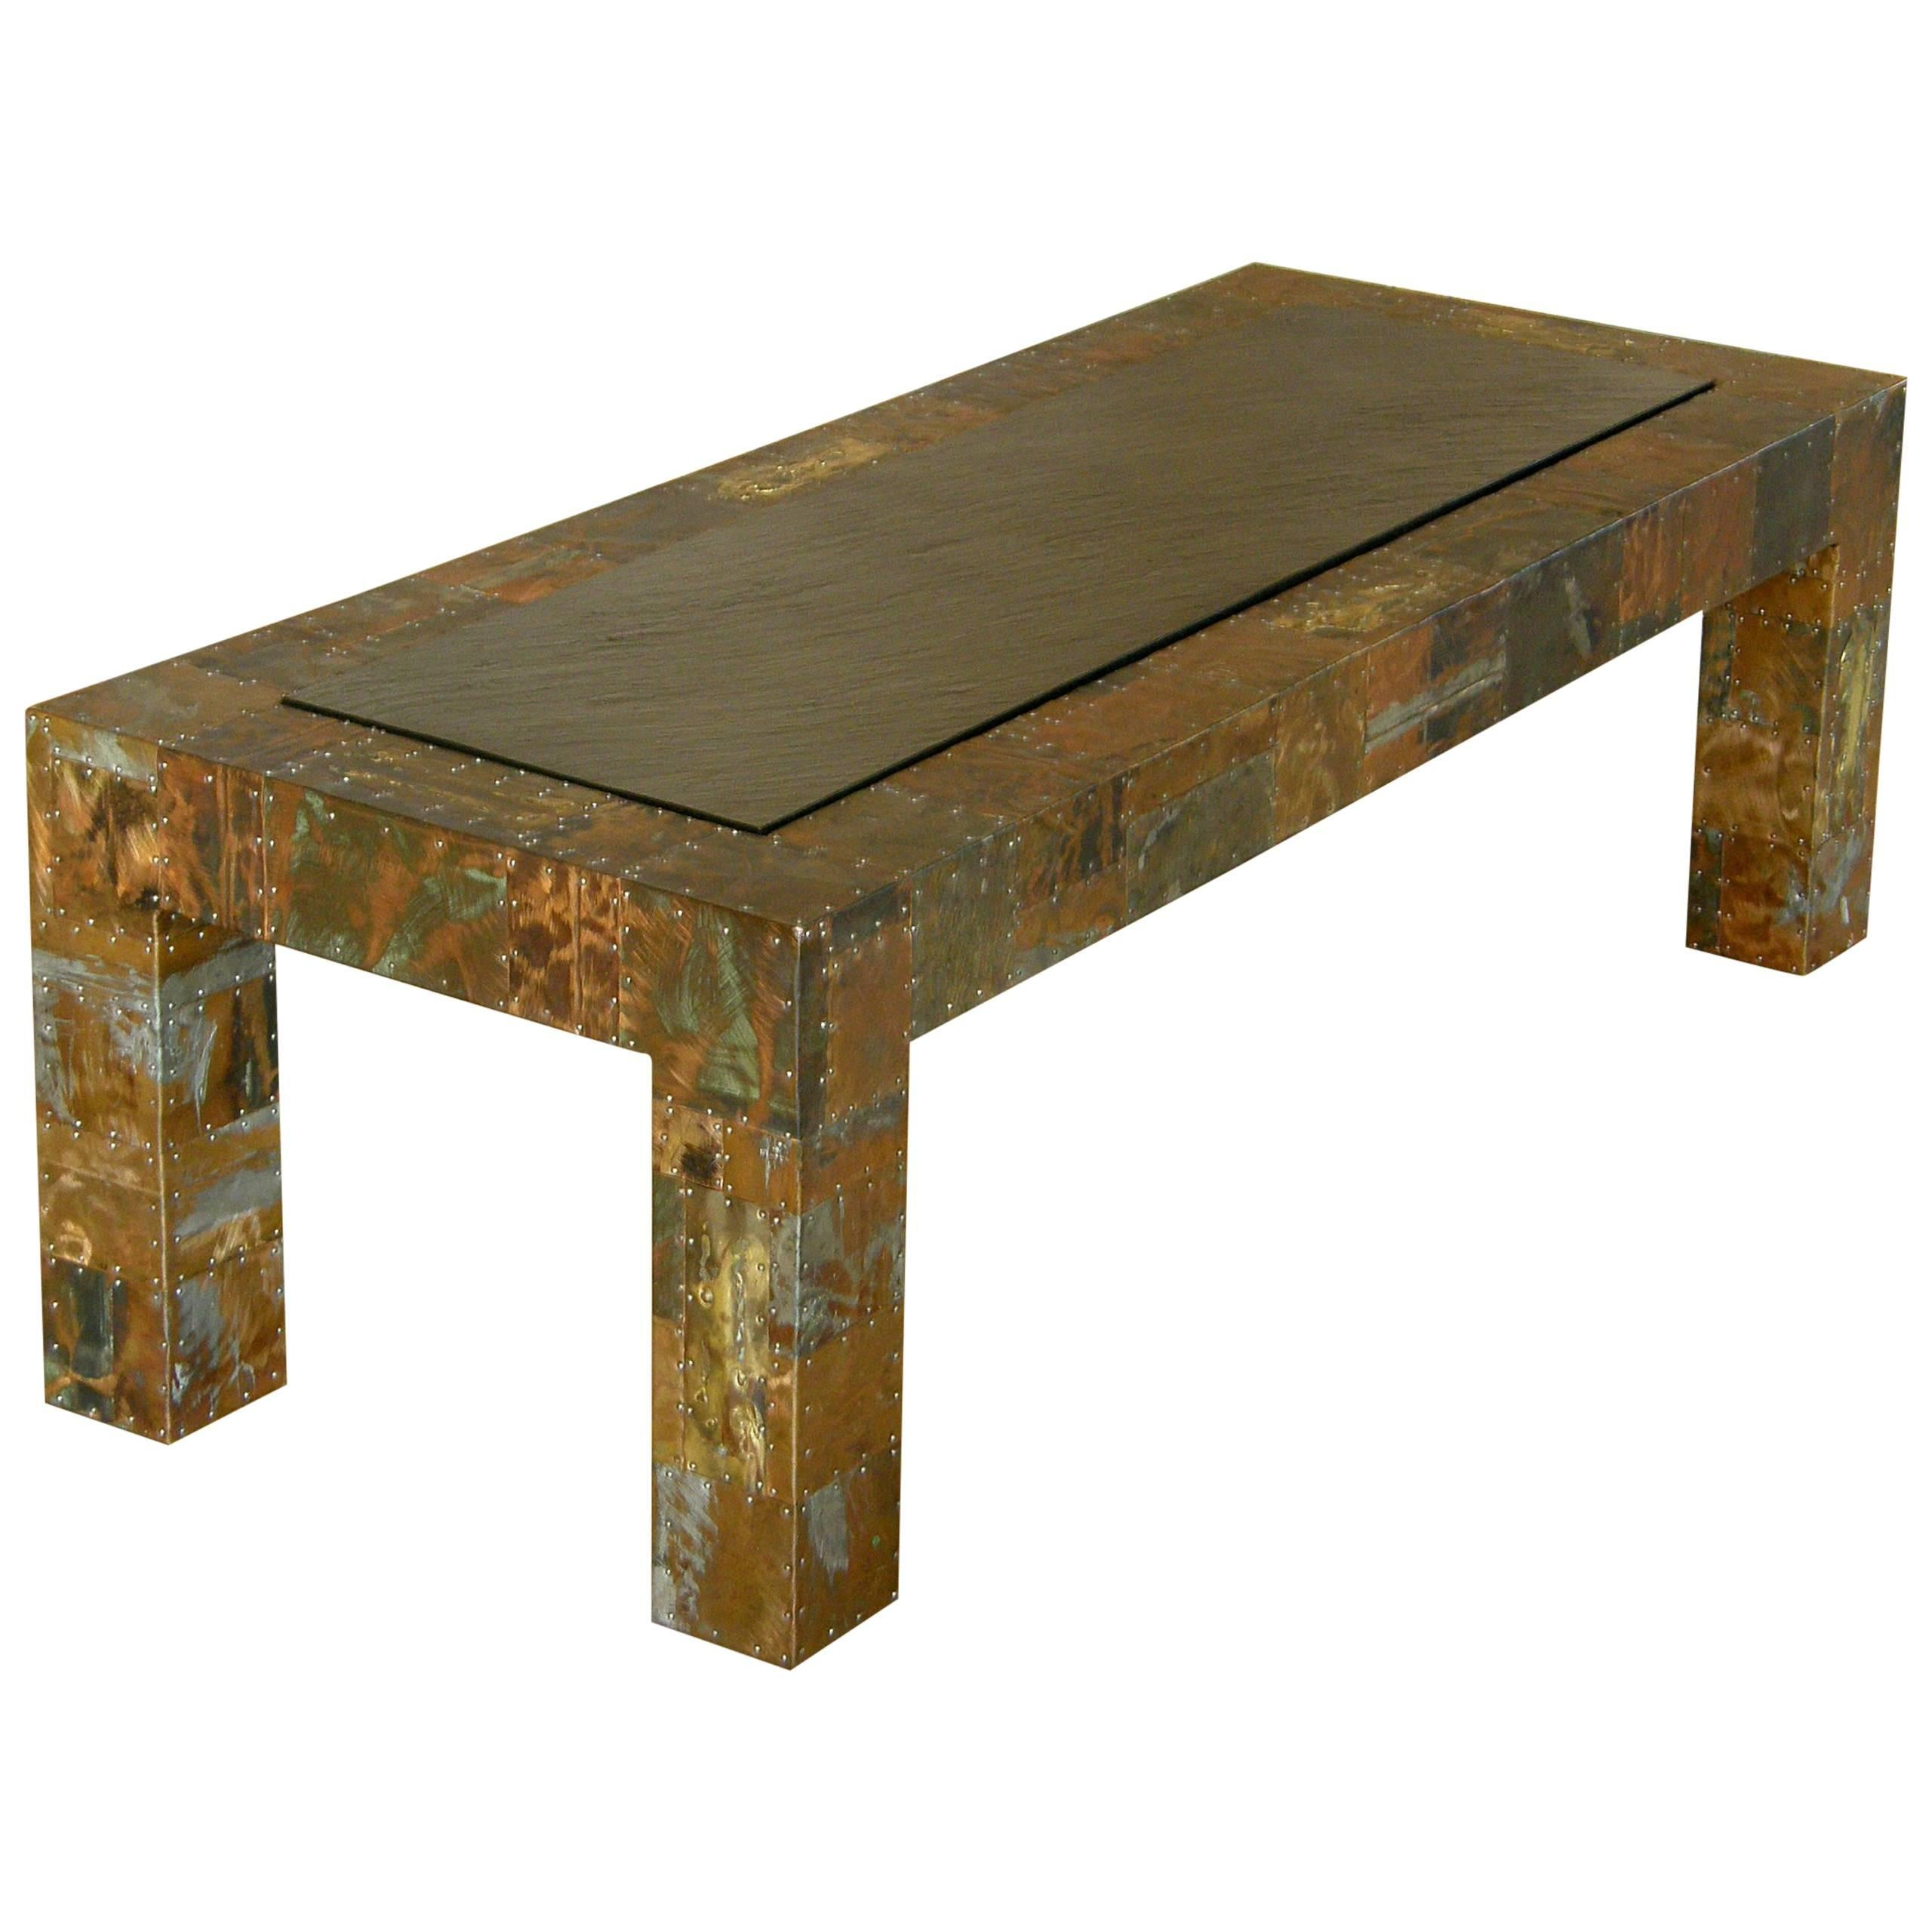 H. A. Larson Brutalist Patchwork Coffee Table with Slate Top